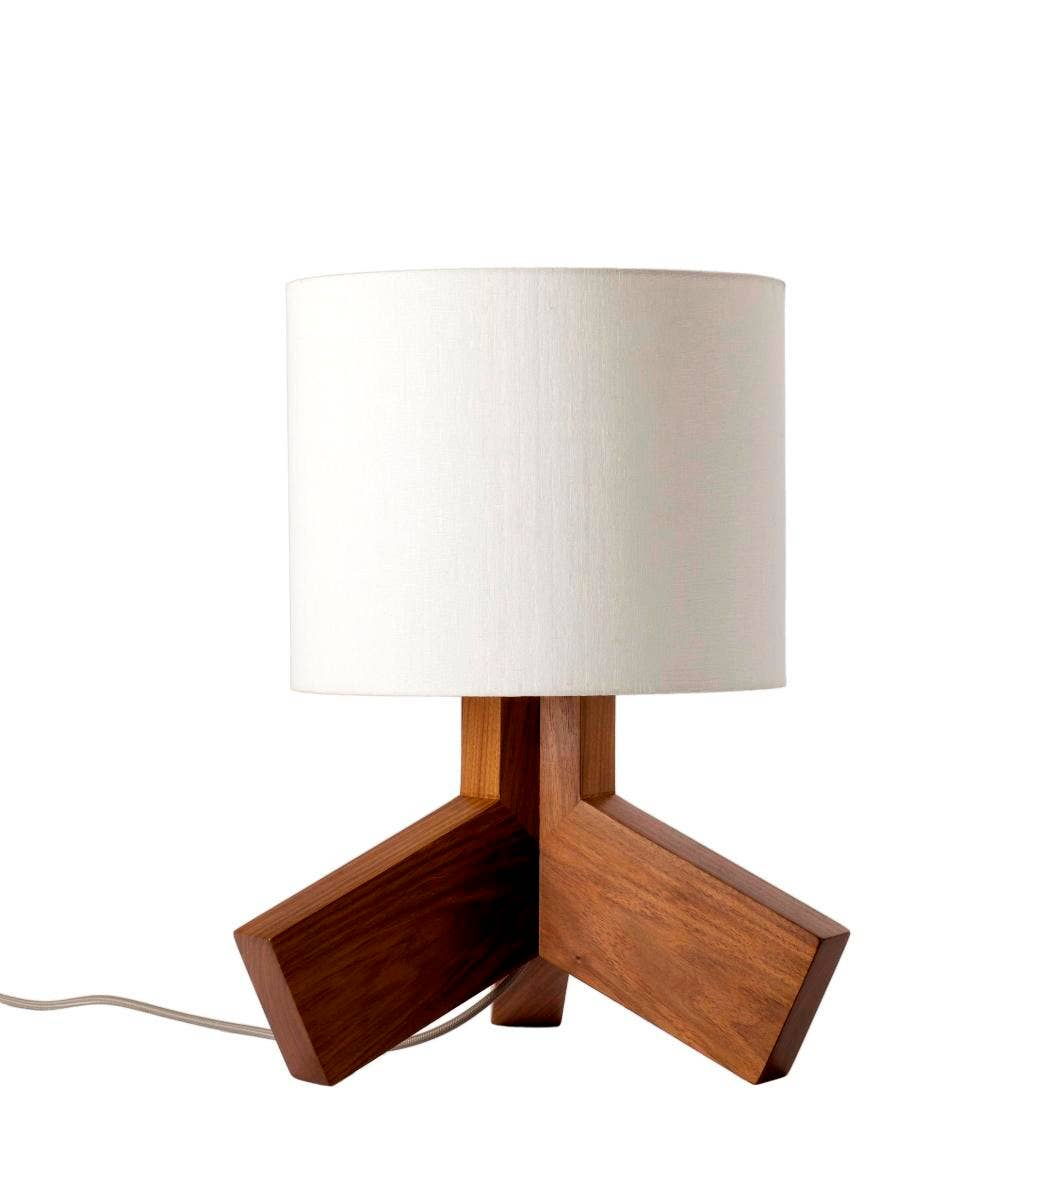 Antique wood table lamps - Rook Lamp